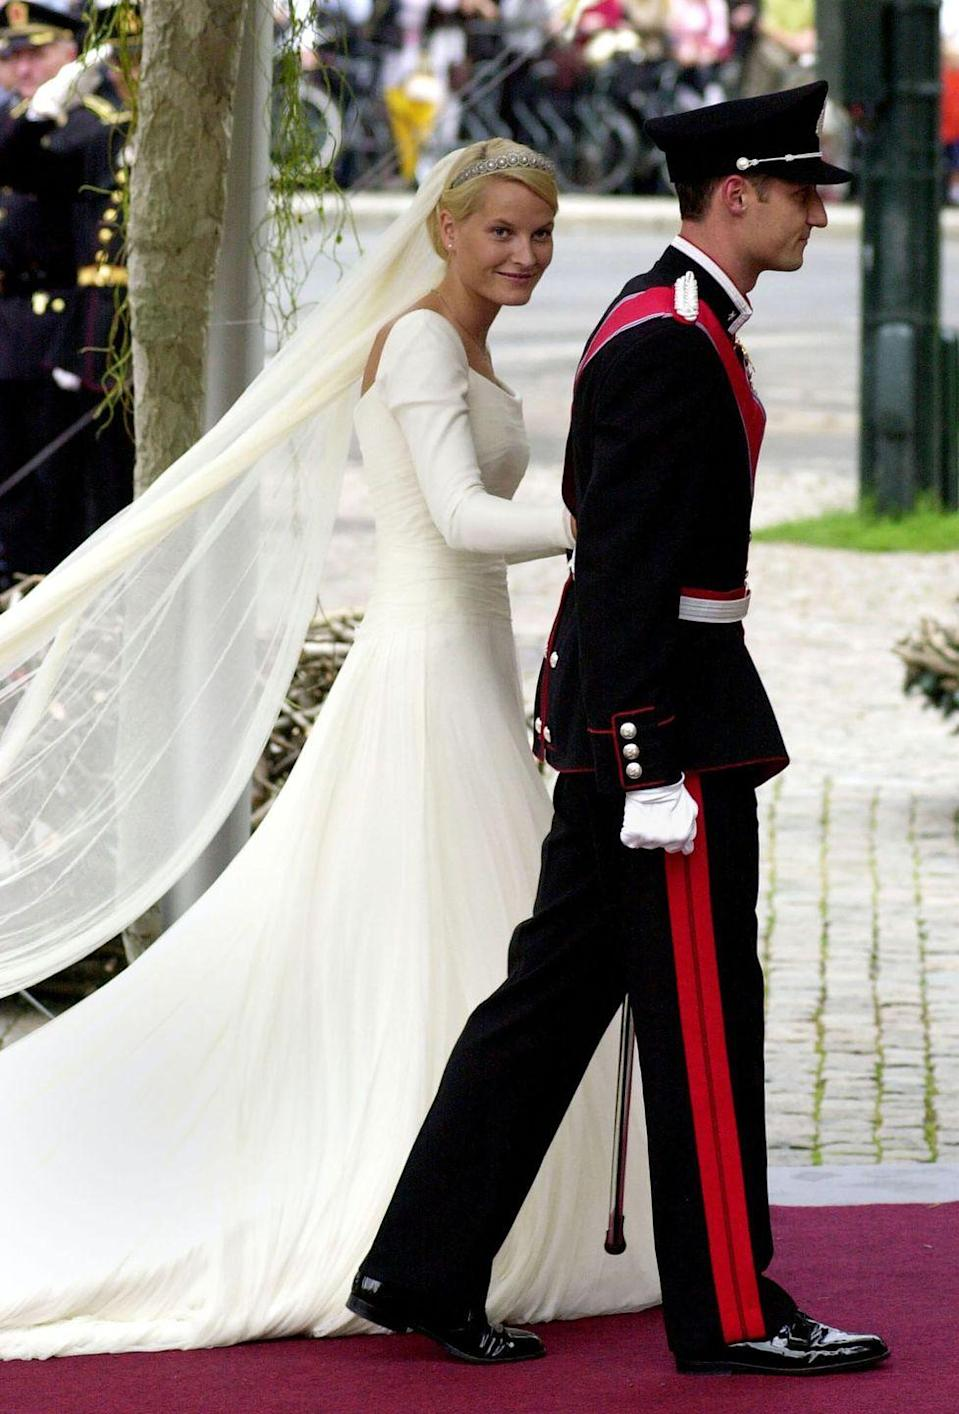 "<p>Mette-Marit Tjessem Hoiby met The Crown Prince Haakon of Norway during a party at the Quart Festival, Norway's largest music festival. The two later met again and started dating, and were married in 2001. </p><p>Prior to becoming Norwegian royalty, Mette-Marit was a waitress and a single mother, <a href=""https://www.marieclaire.com/culture/g14448603/royal-wedding-dresses-through-the-years/?slide=29"" rel=""nofollow noopener"" target=""_blank"" data-ylk=""slk:reports Marie Claire"" class=""link rapid-noclick-resp"">reports <em>Marie Claire</em></a>, making this meeting a real life Cinderella story.</p>"